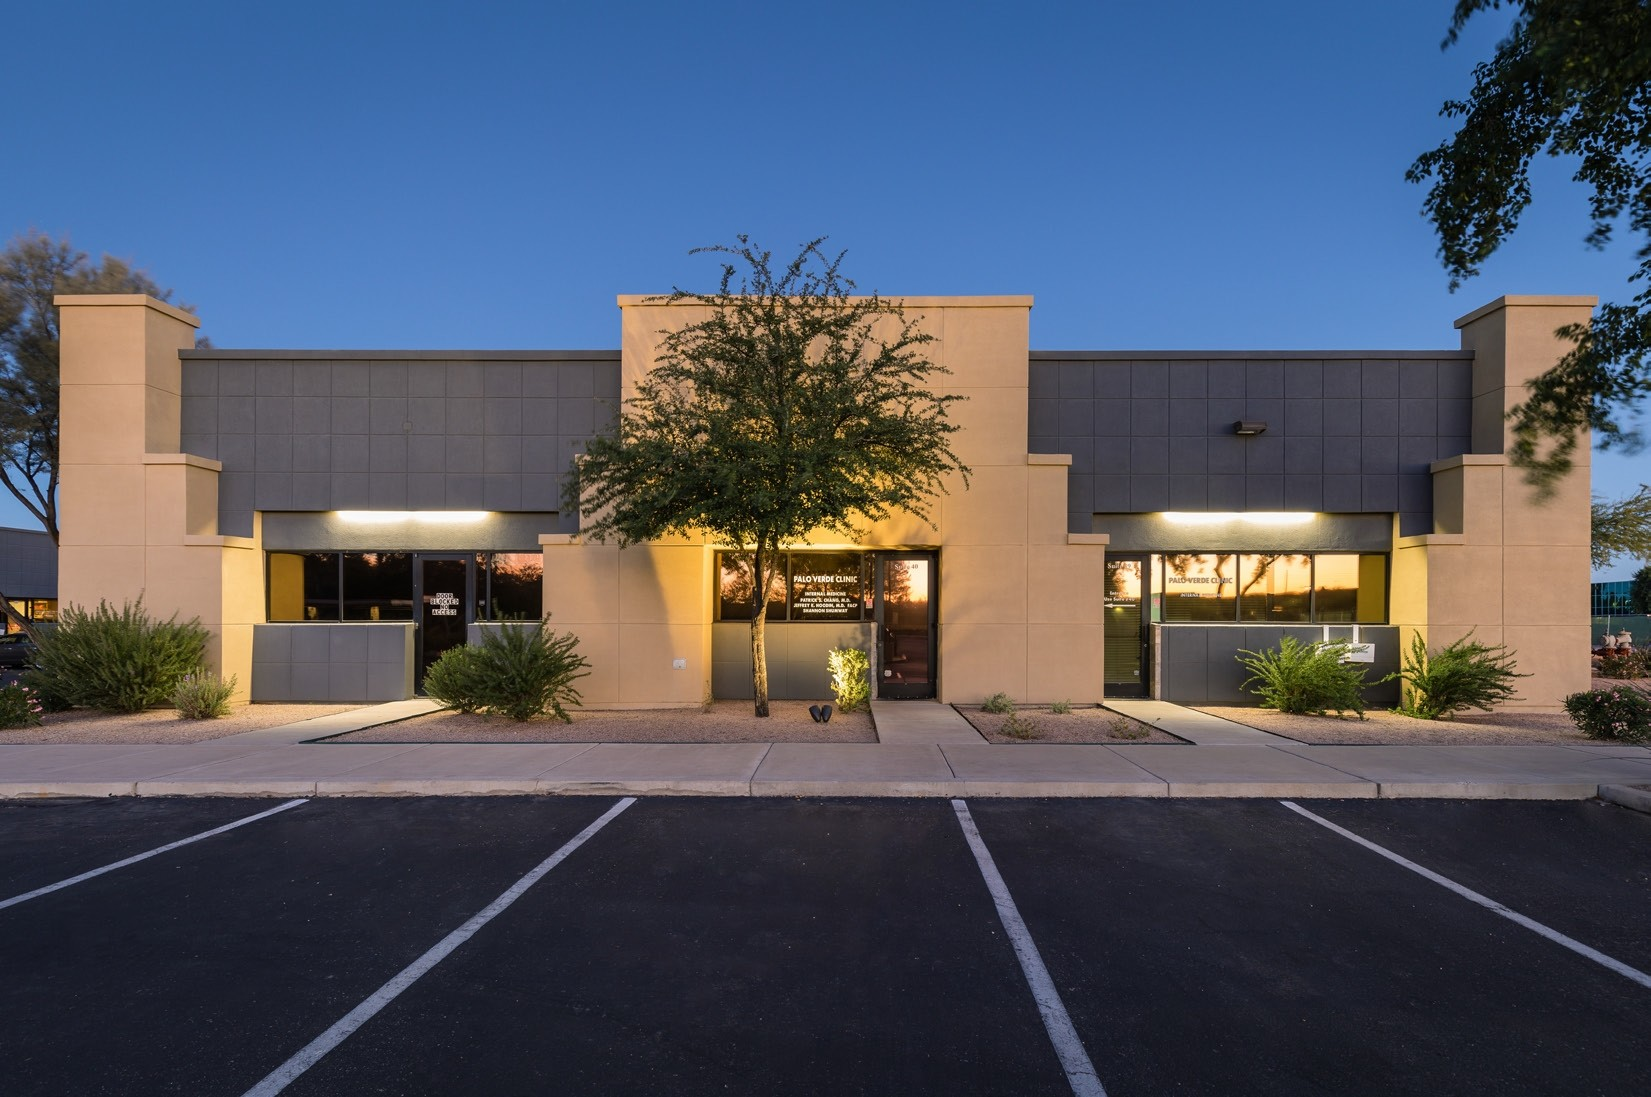 600 S Dobson Rd, Chandler AZ 85224 Medical Office Condo